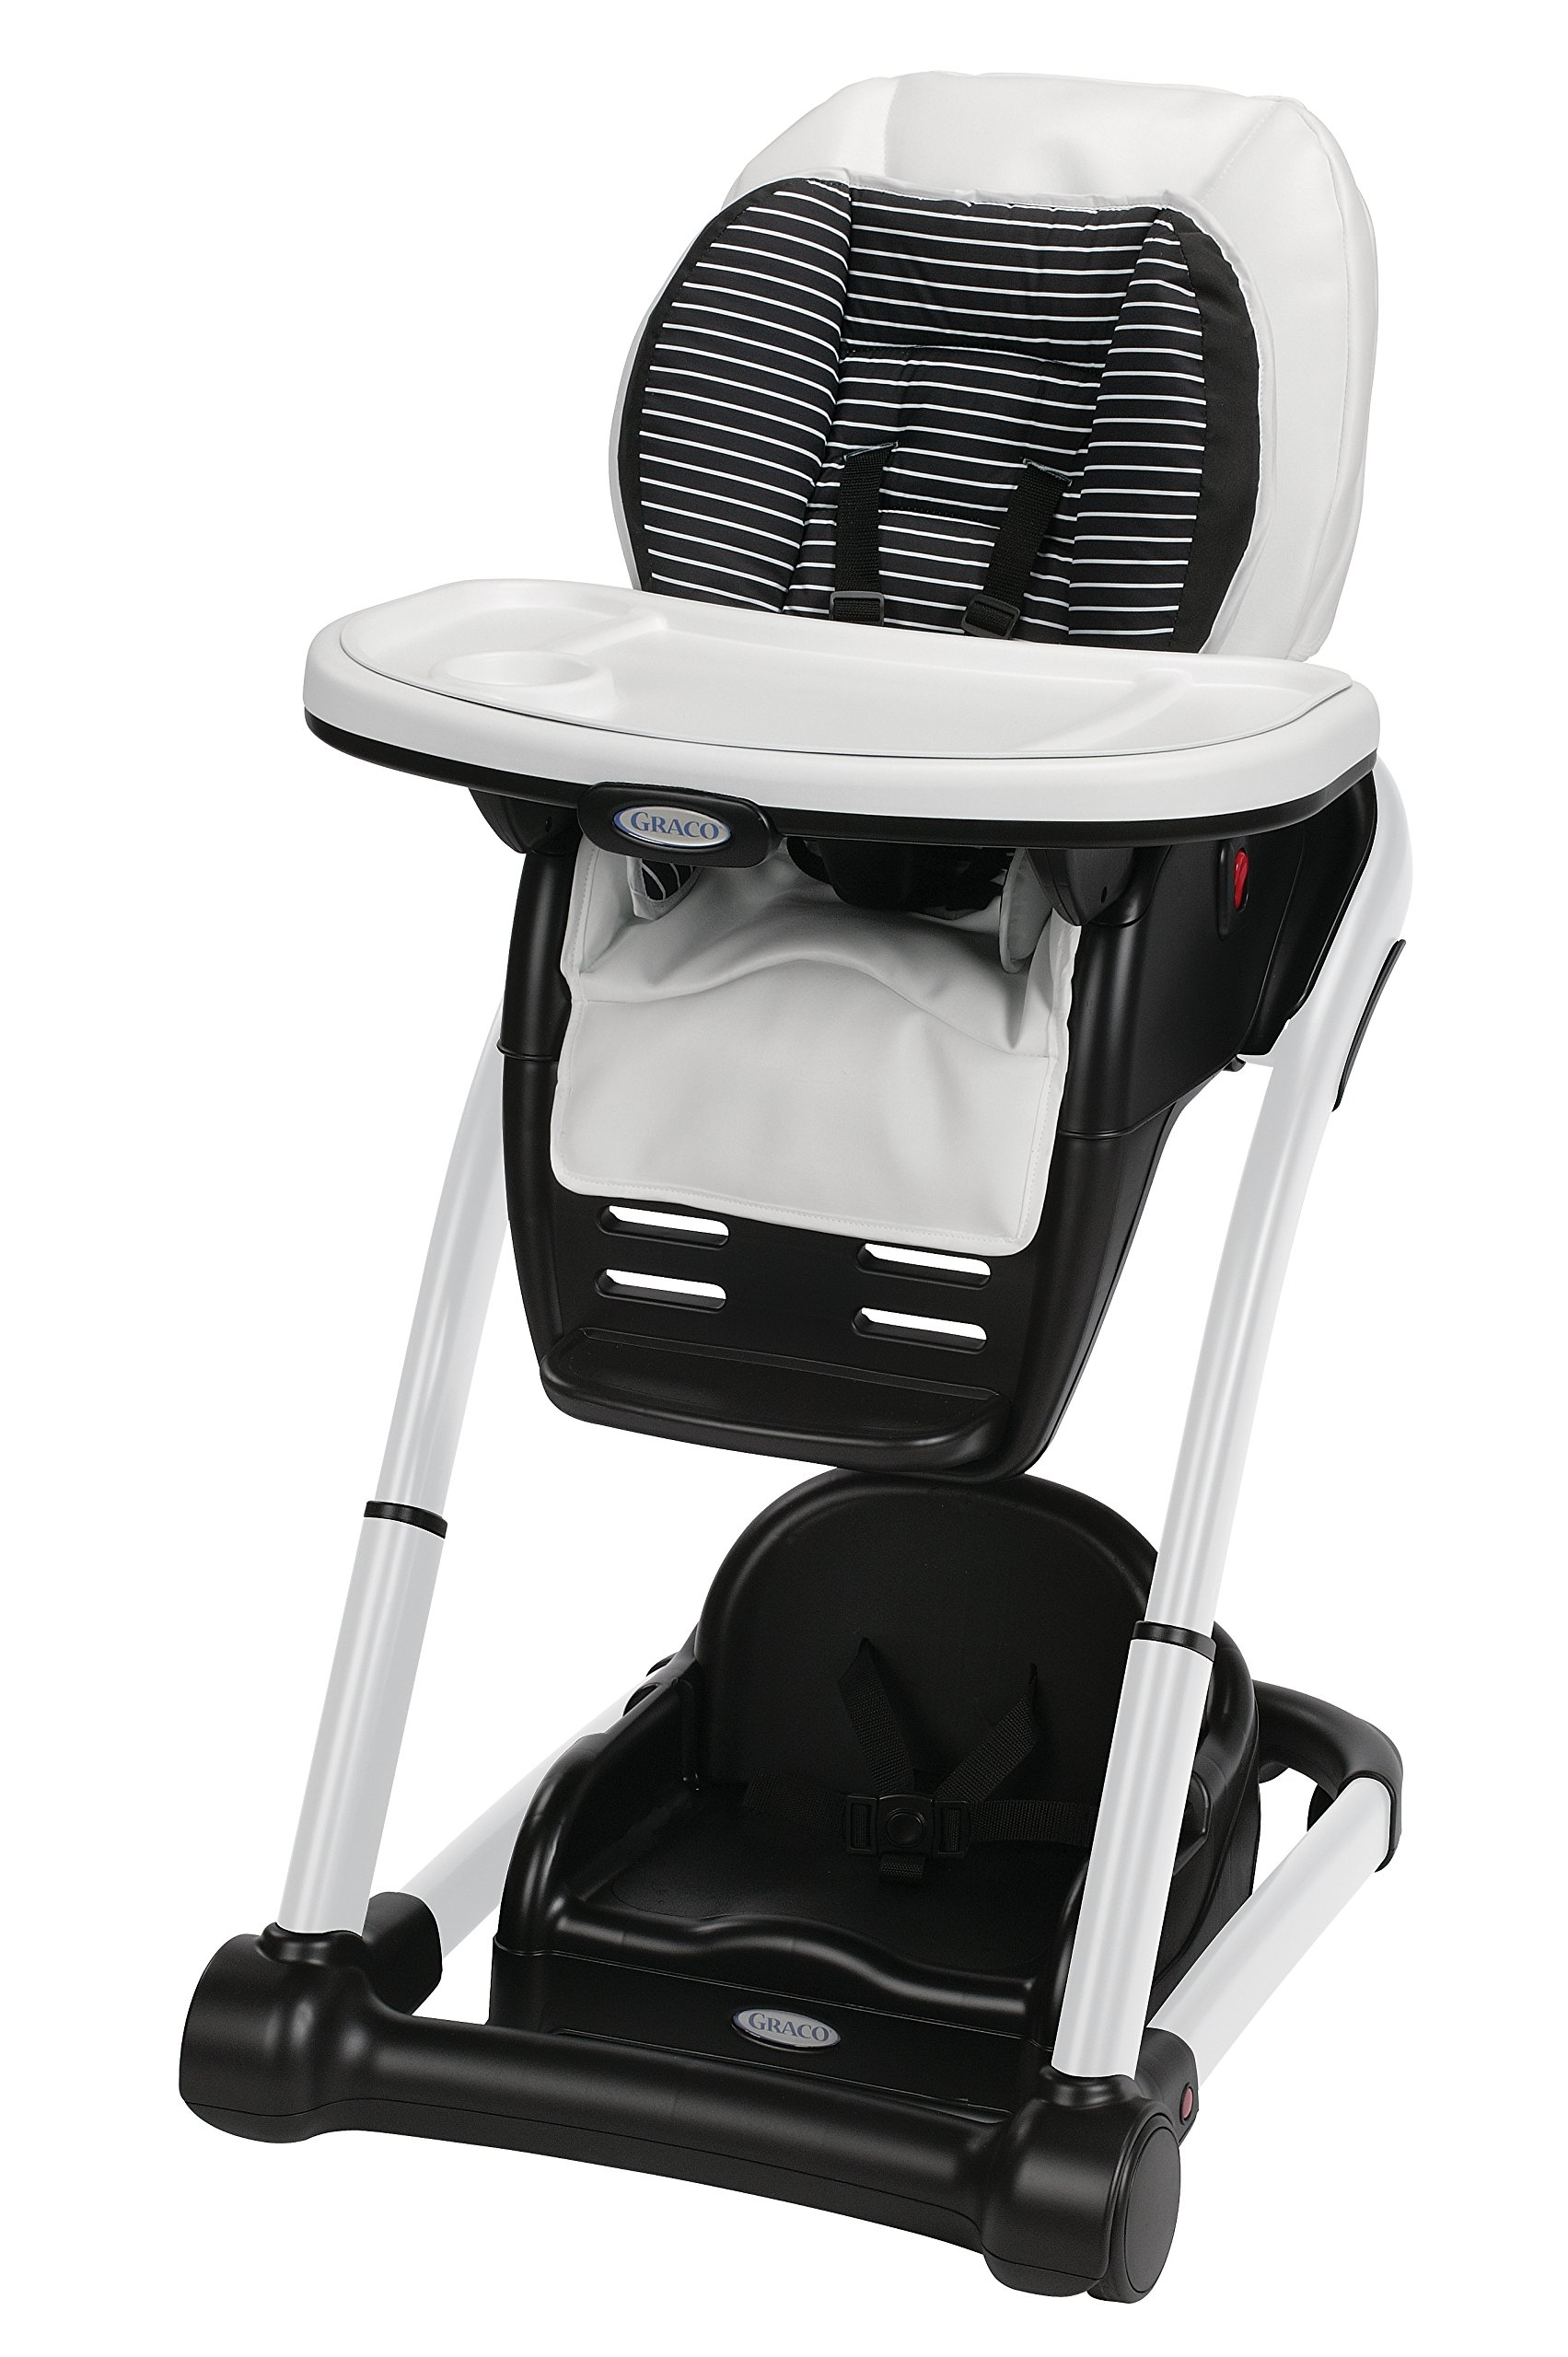 Blossom 6 In 1 Highchair Easily Converts From An Infant Highchair With  Recline   To A Traditional Baby High Chair   To An Infant Booster   To A  Toddler ...